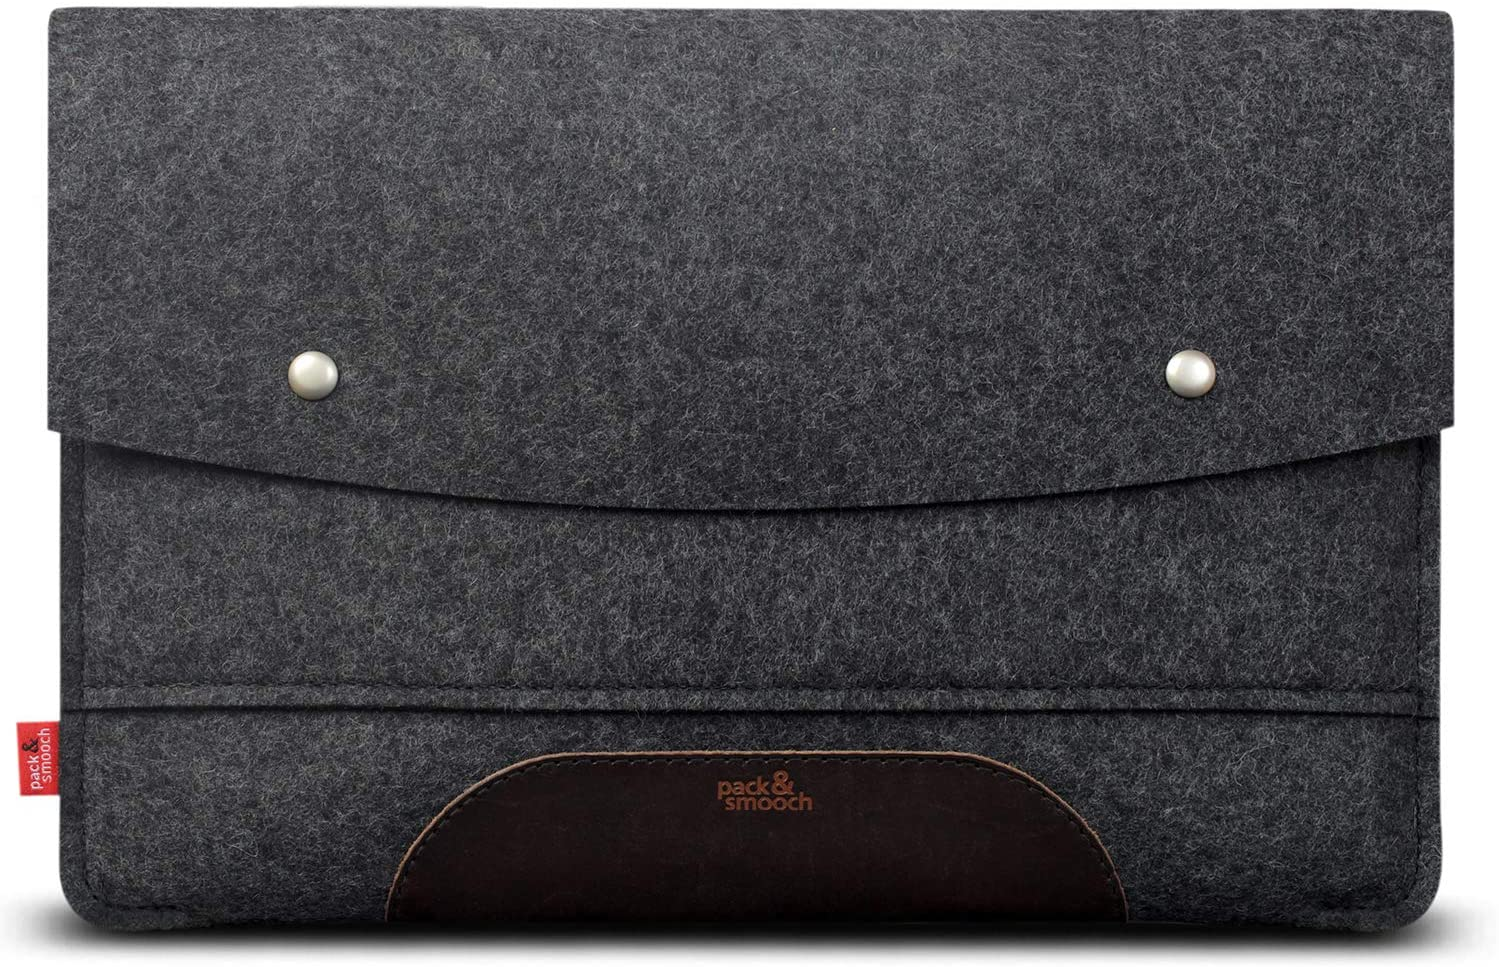 Pack & Smooch MacBook Pro 16 Case - 100% Merino Wool Felt and Pure Vegetable Tanned Leather Made in Germany - Dark Gray/Dark Brown